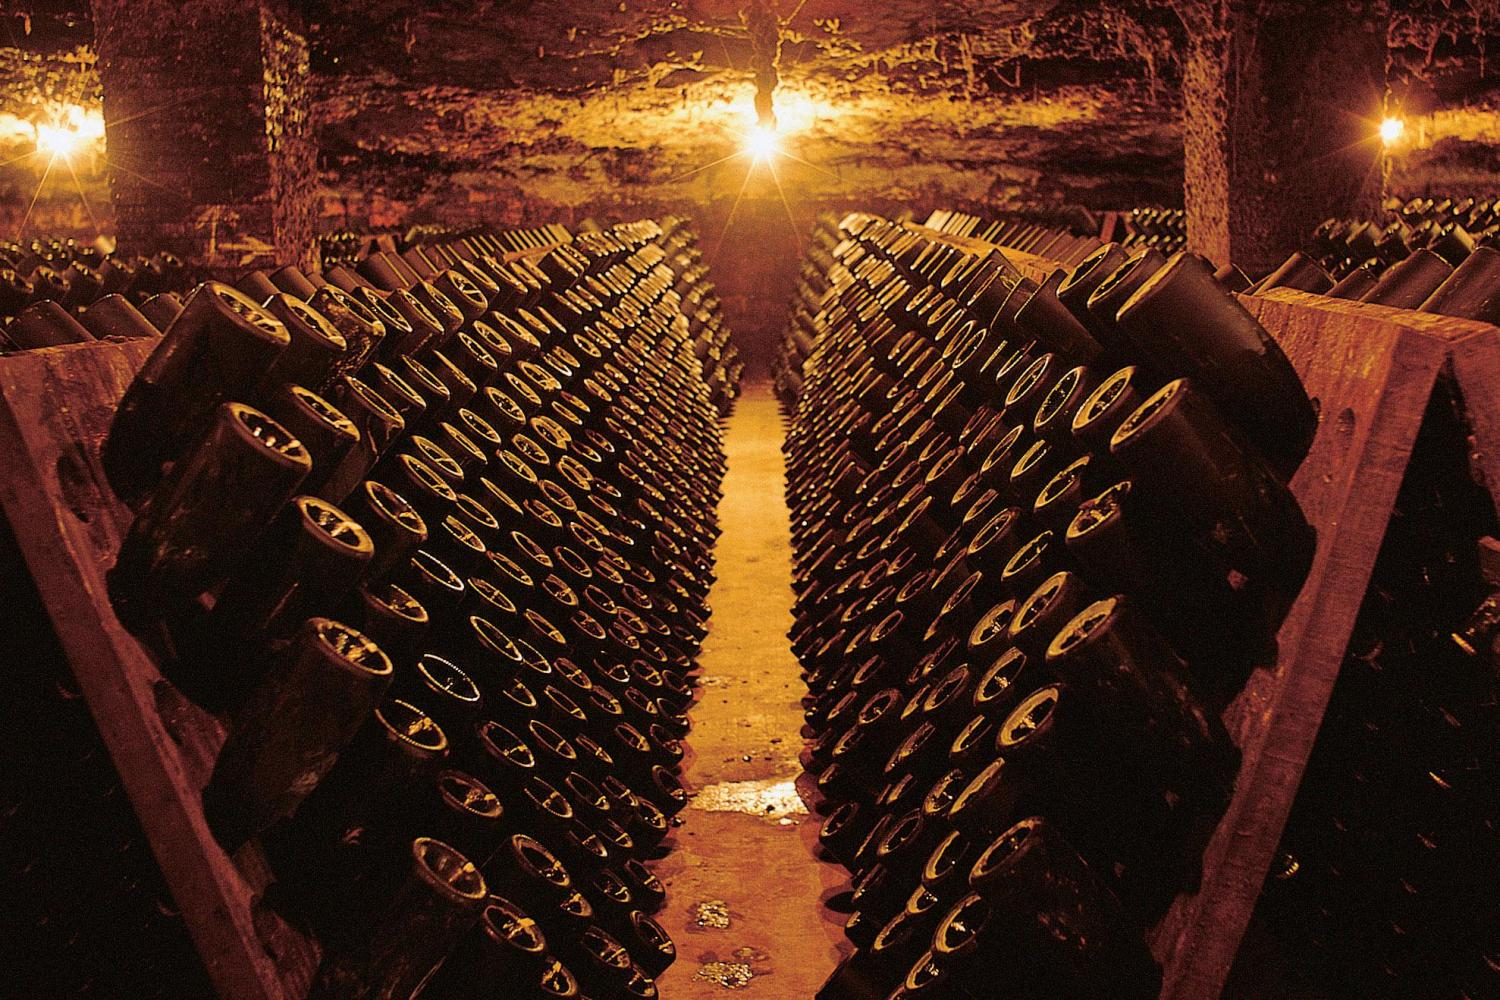 the Cava cave in Spain